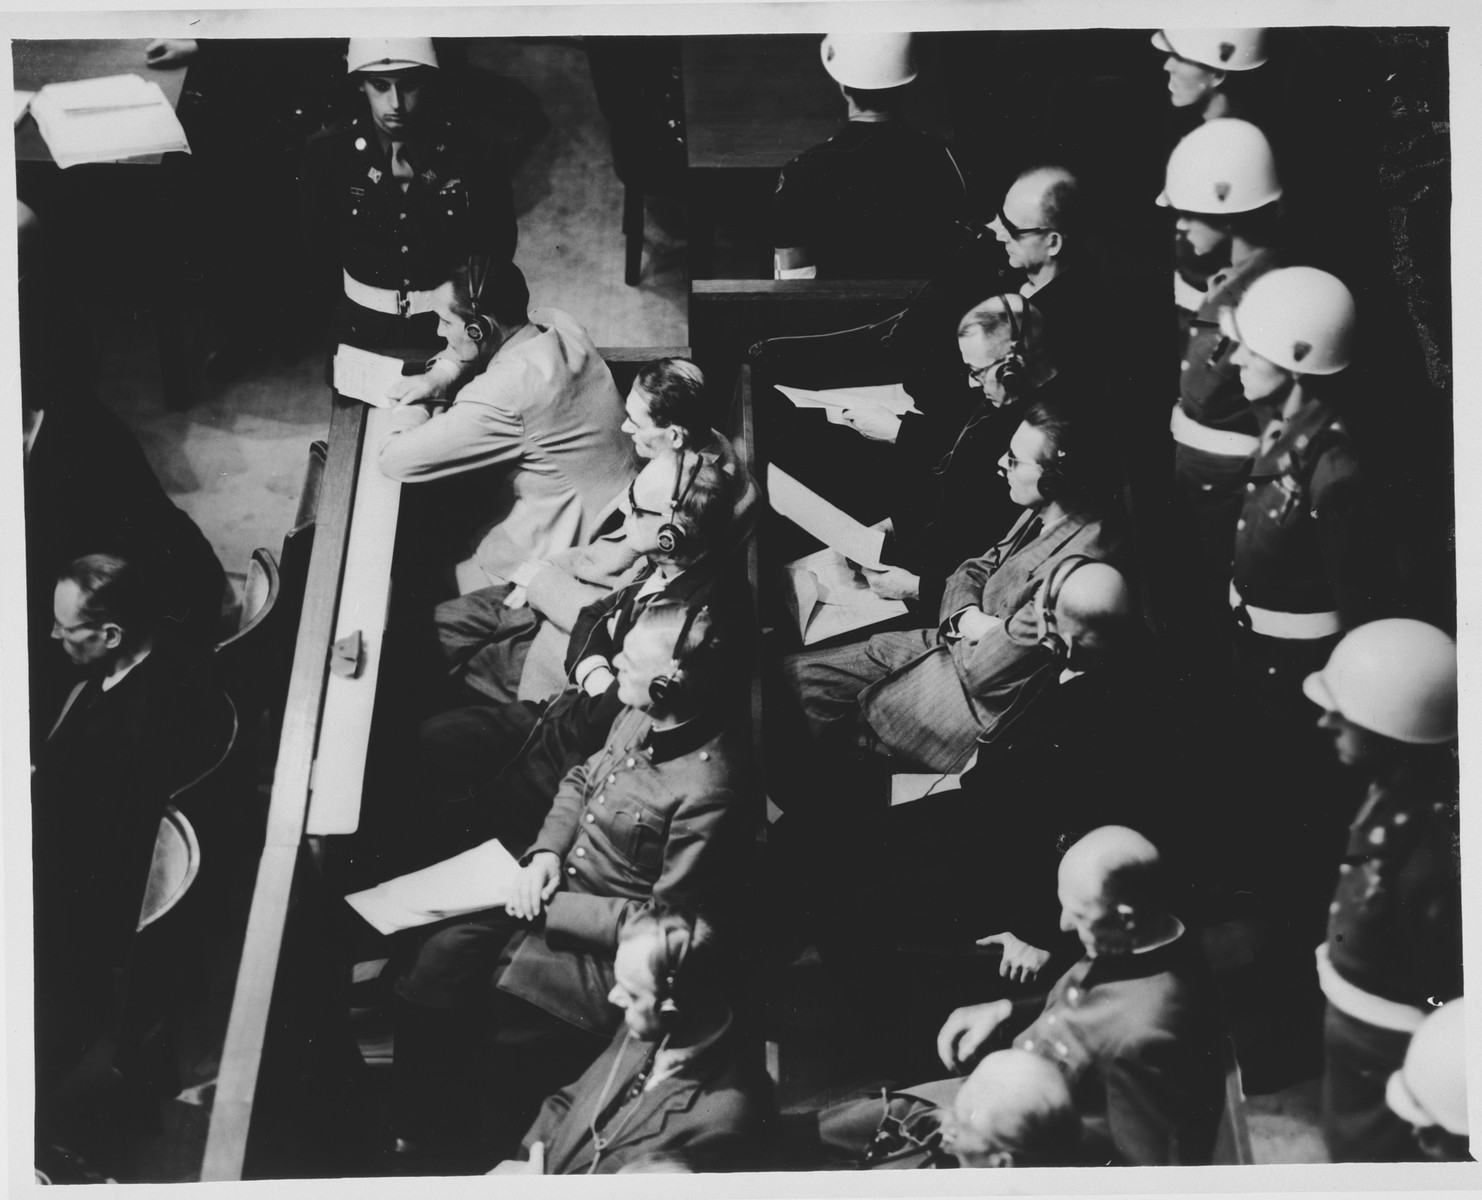 View from above of the defendants dock at the International Military Tribunal trial of war criminals at Nuremberg.